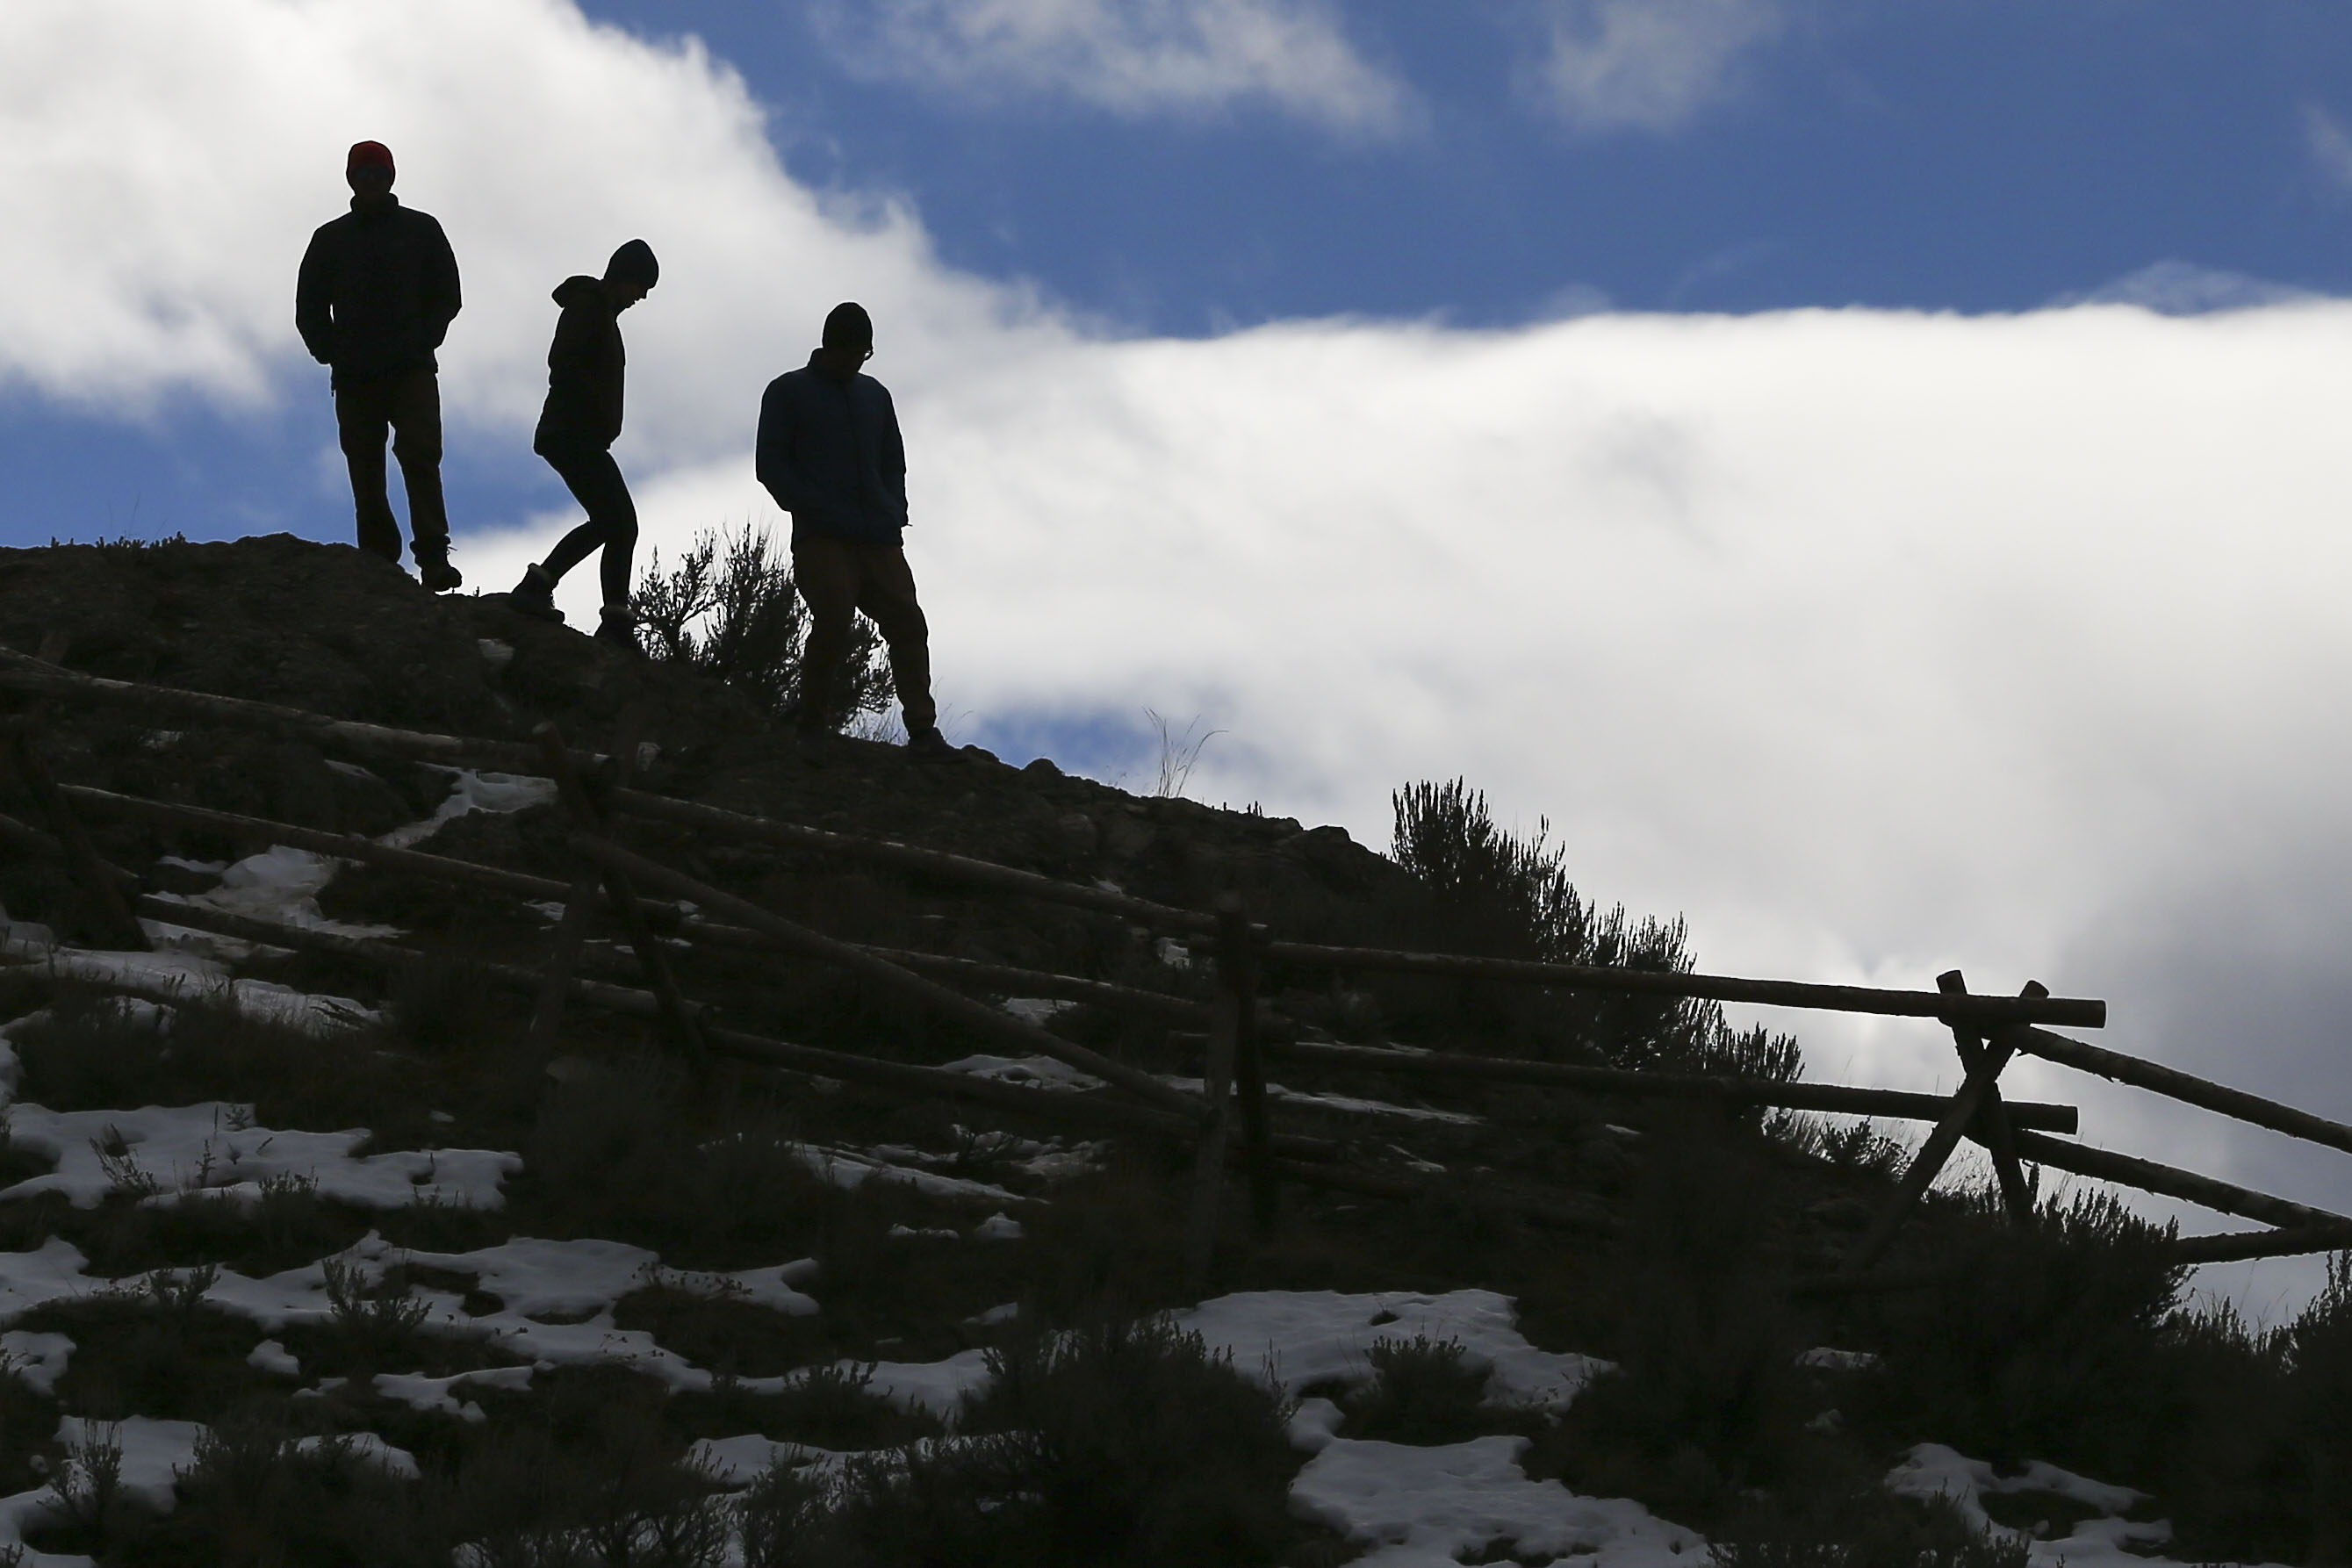 Hikers make their way down from Ensign Peak in Salt Lake City on Sunday, Feb. 3, 2019.